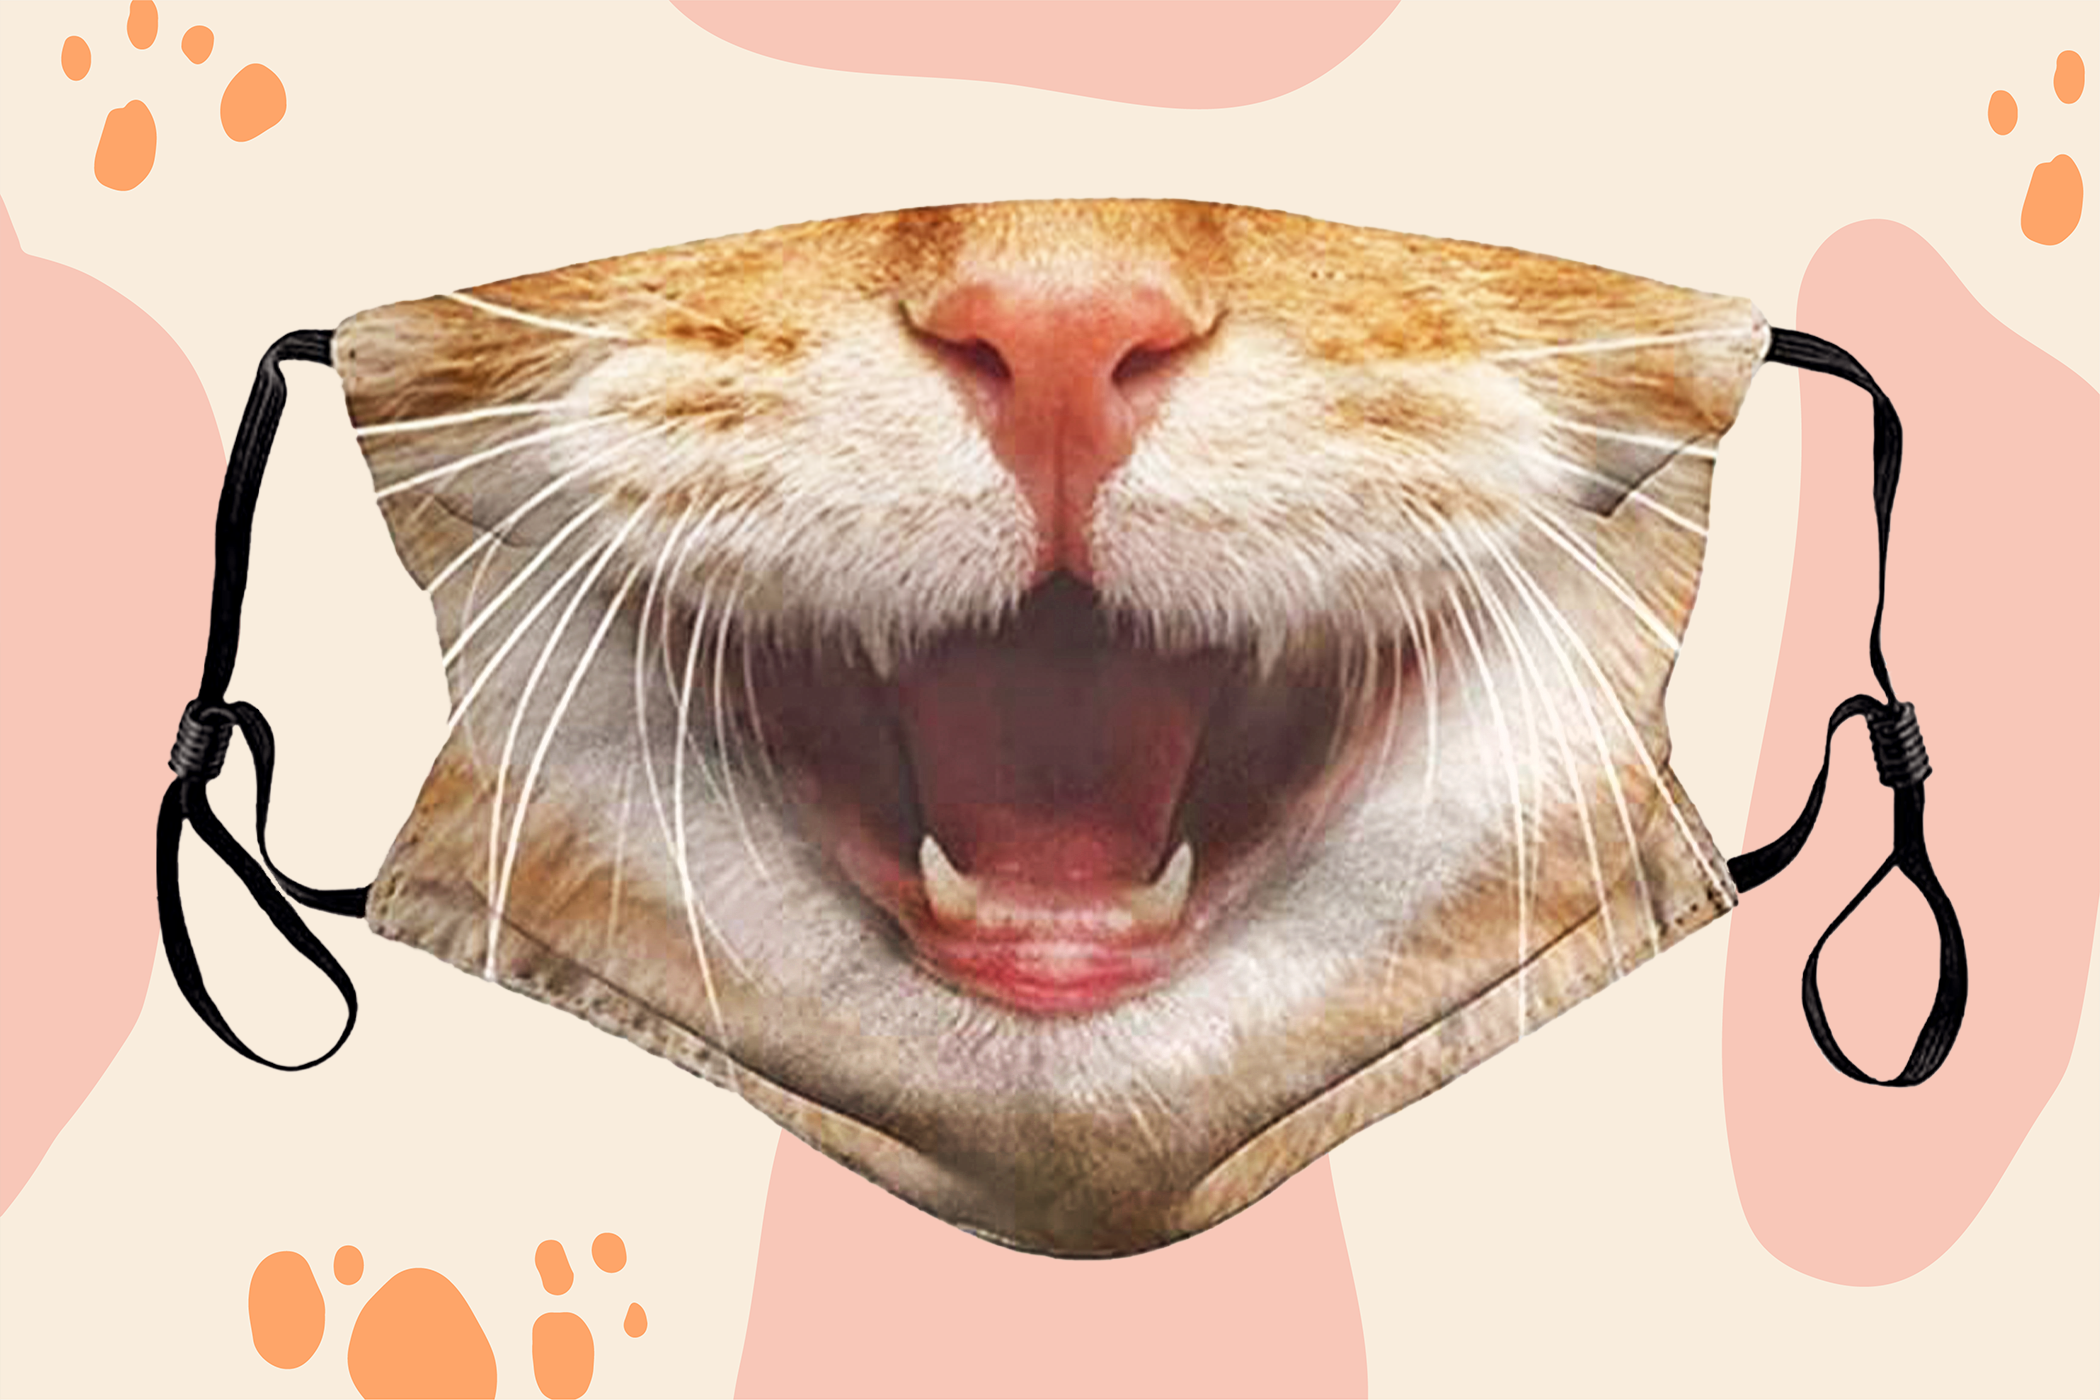 cat face mask of an orange cat with mouth open